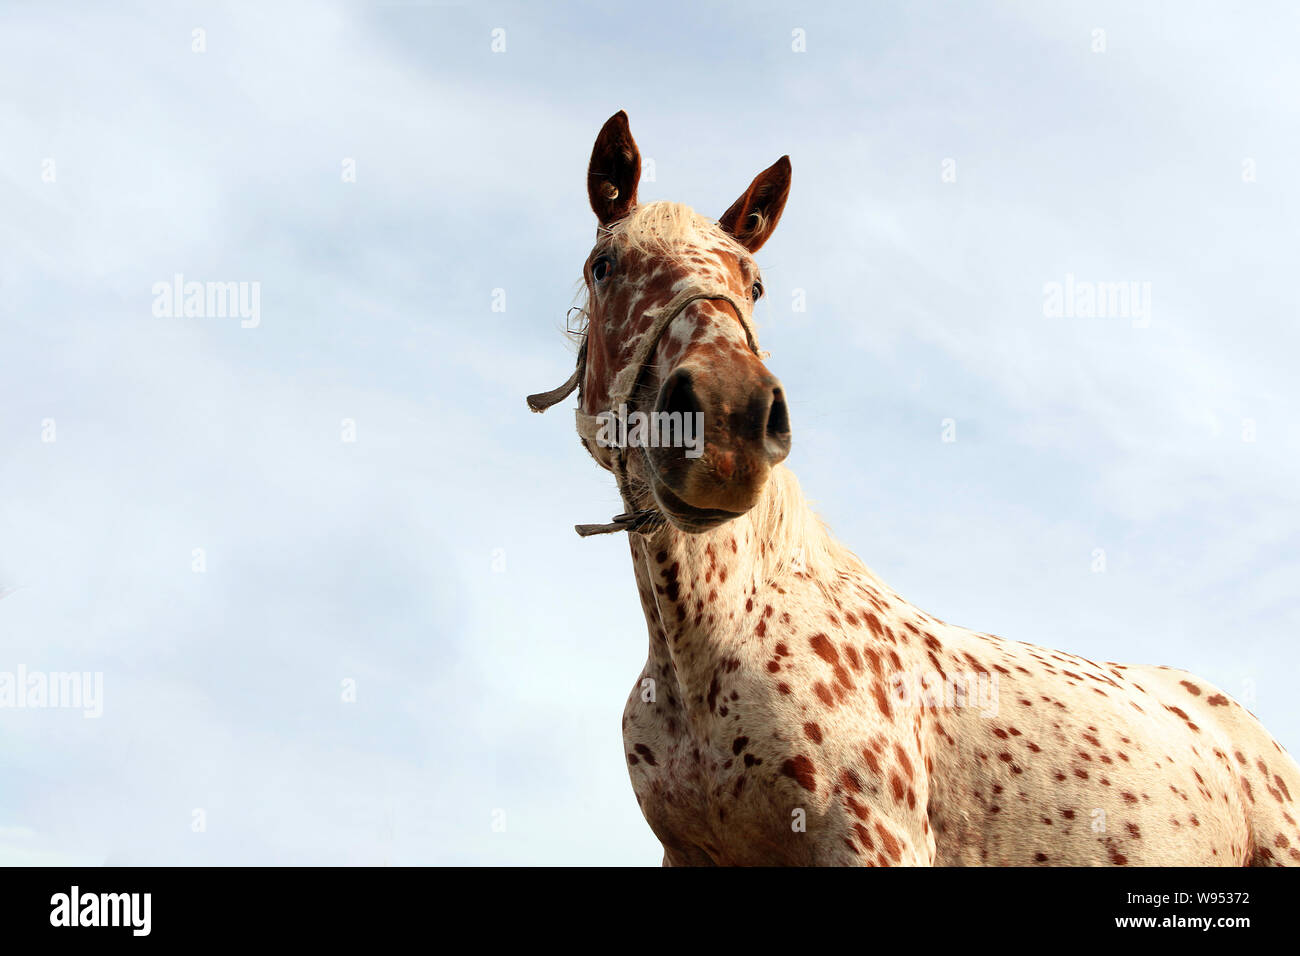 Leopard Coat Pattern Horse Standing With Long Mane Funny Horse Face Infront Of Blue Sky Cute Animals Concept Stock Photo Alamy